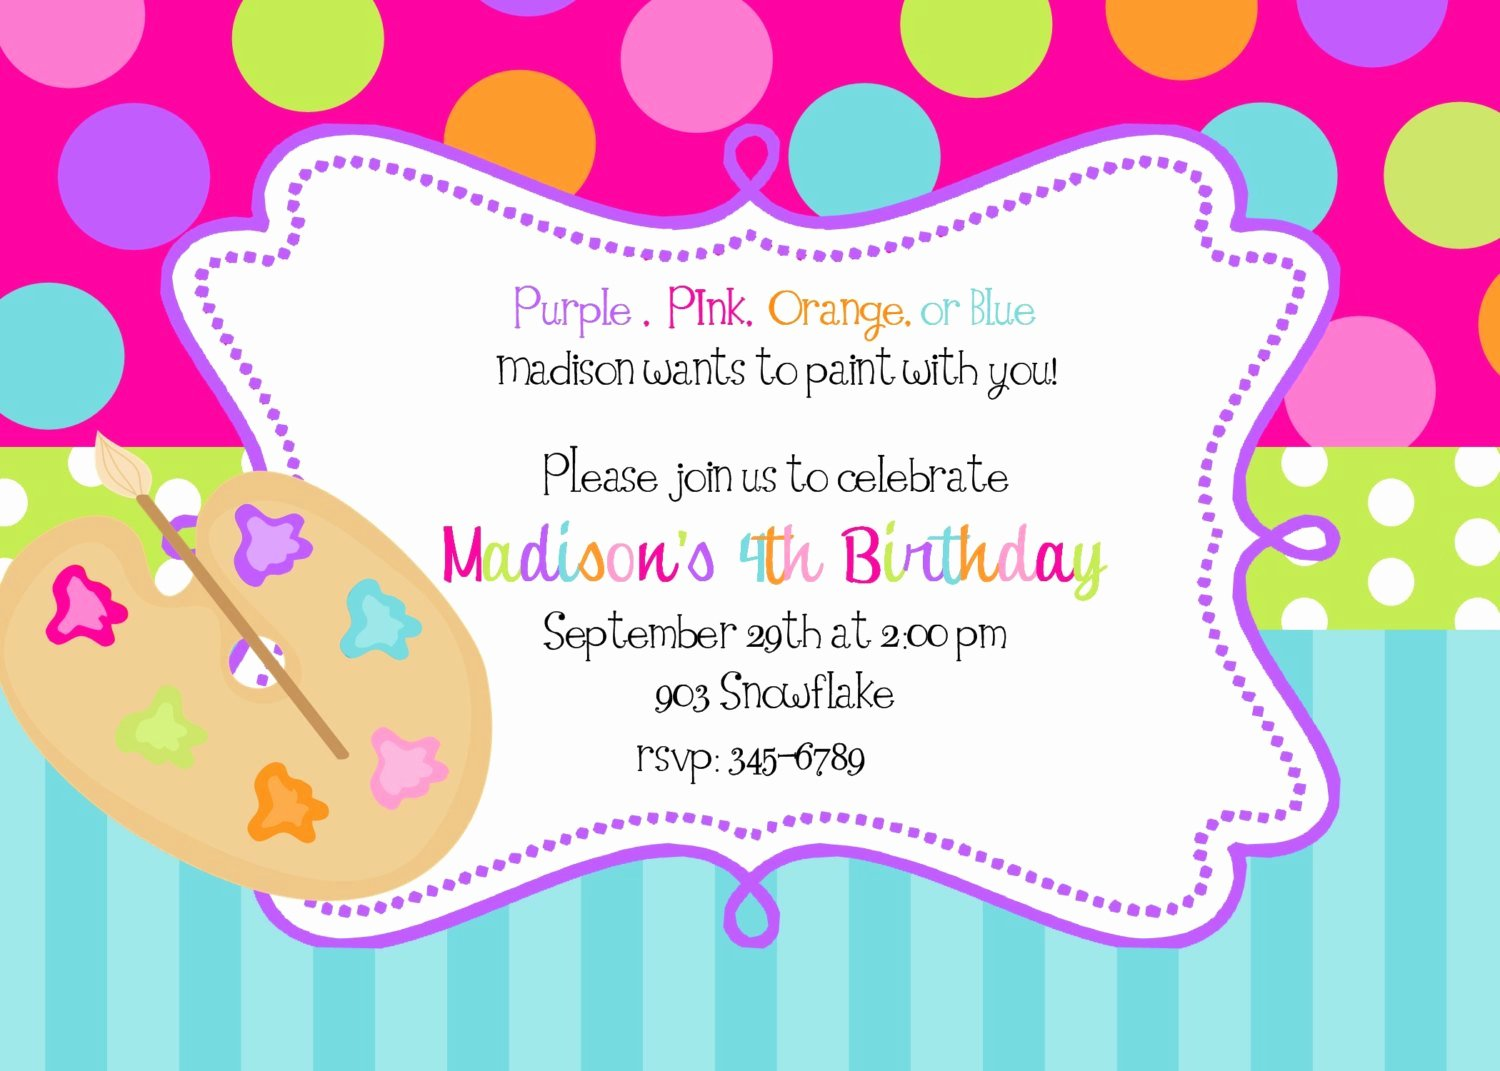 Art Party Invitation Template Lovely Art Painting Birthday Party Invitations Art by Noteablechic